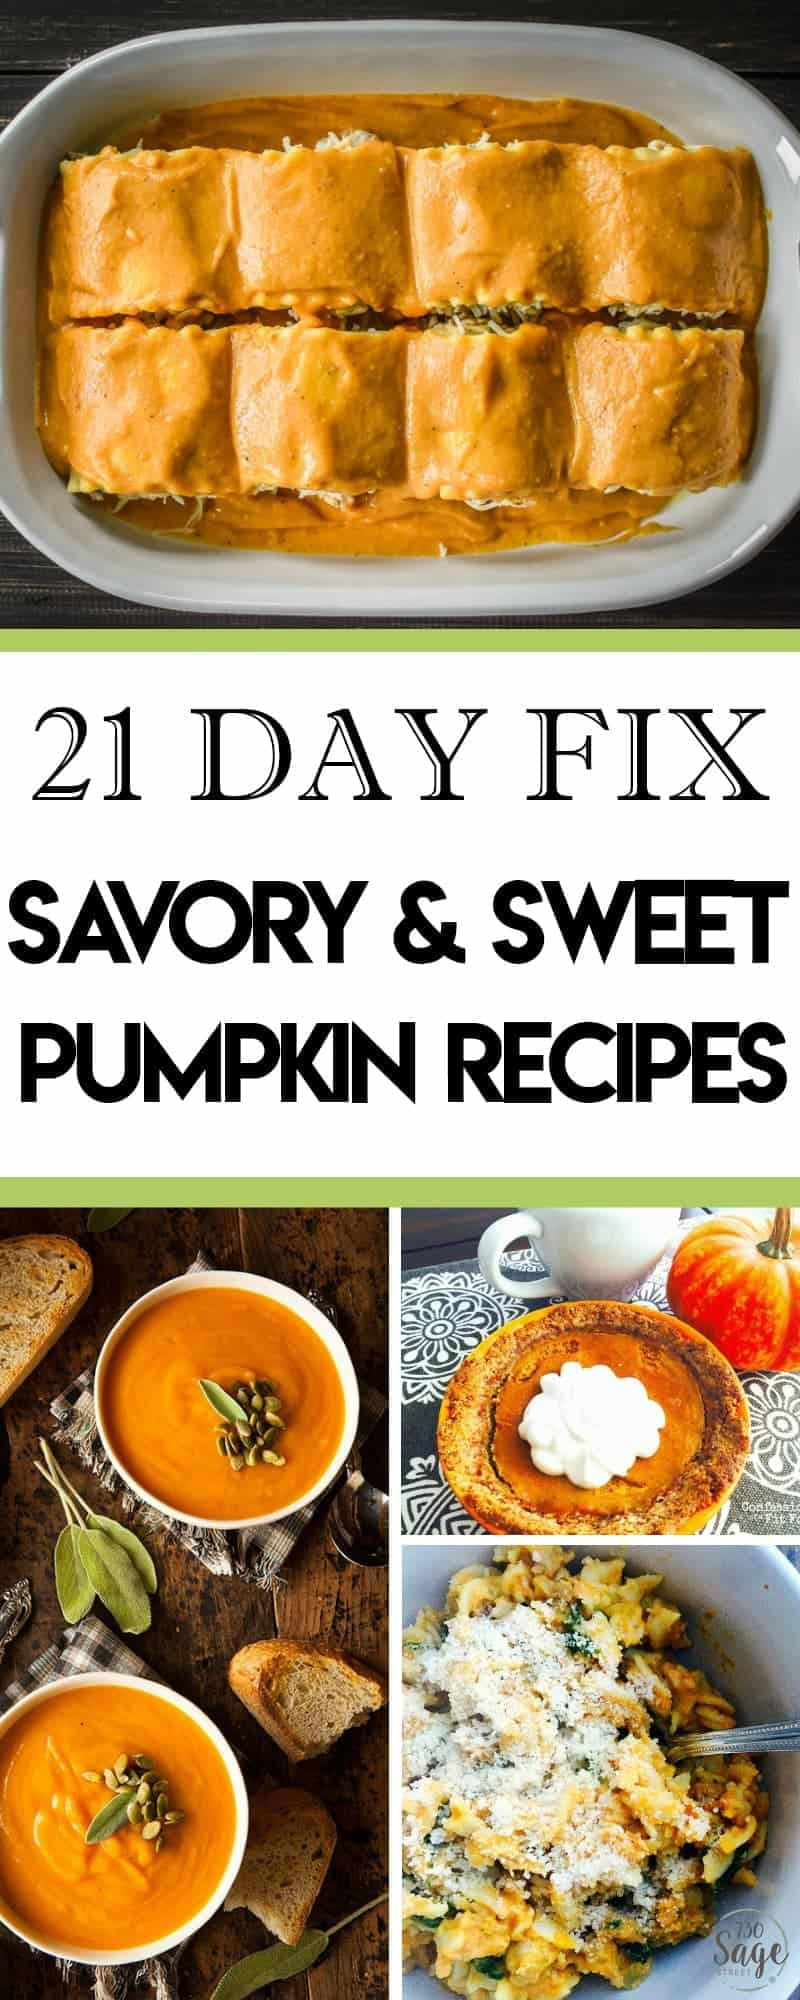 Enjoy the Thanksgiving and Christmas holidays without guilt with these delicious 21 Day Fix pumpkin recipes. Savory and sweet options!